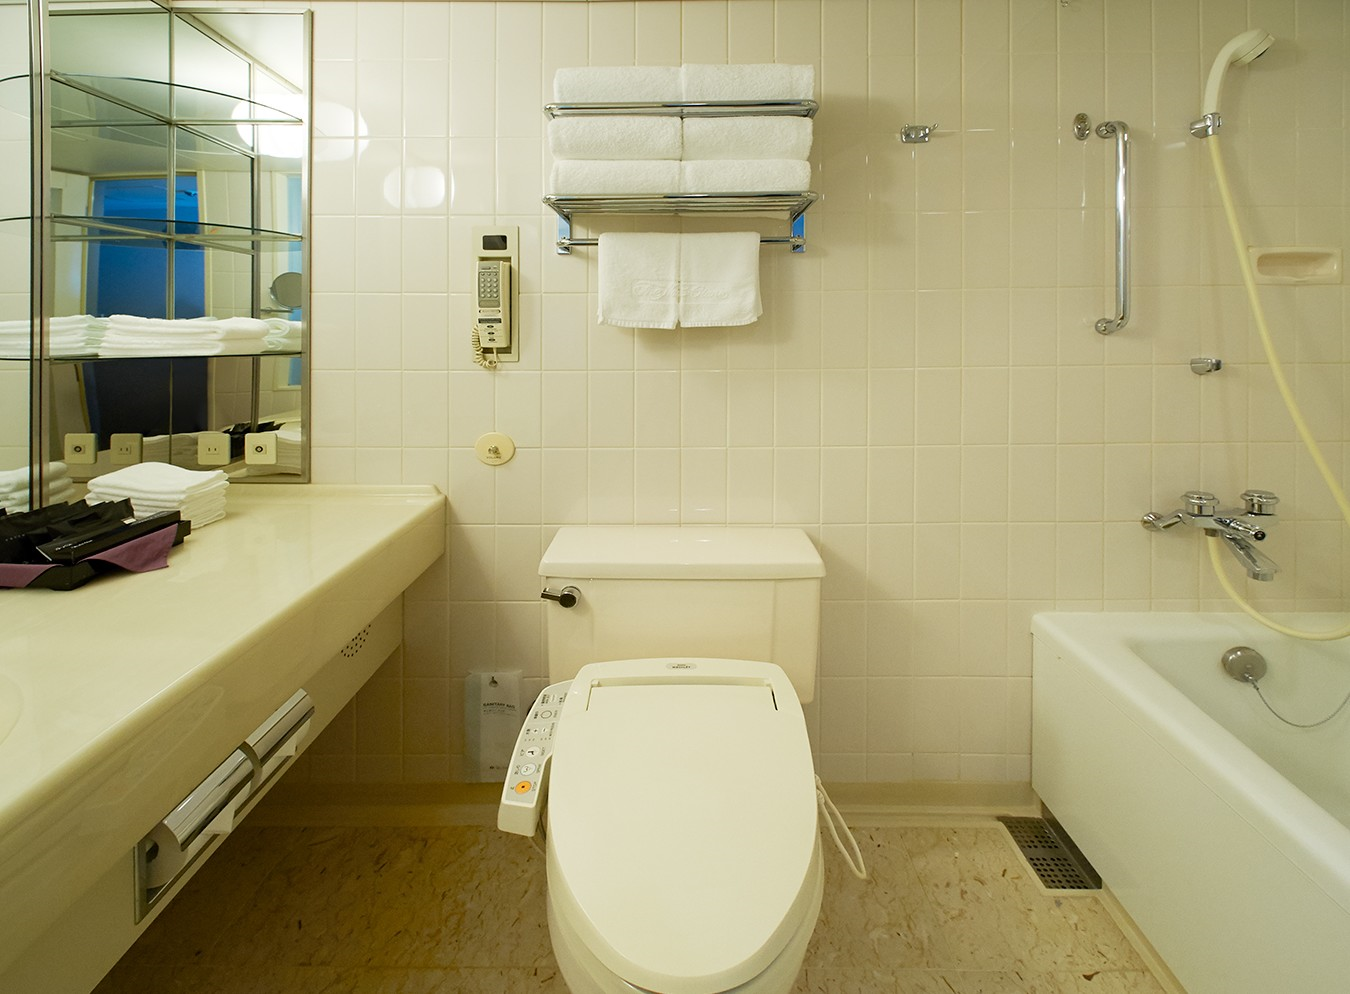 The Main Standard Bathroom